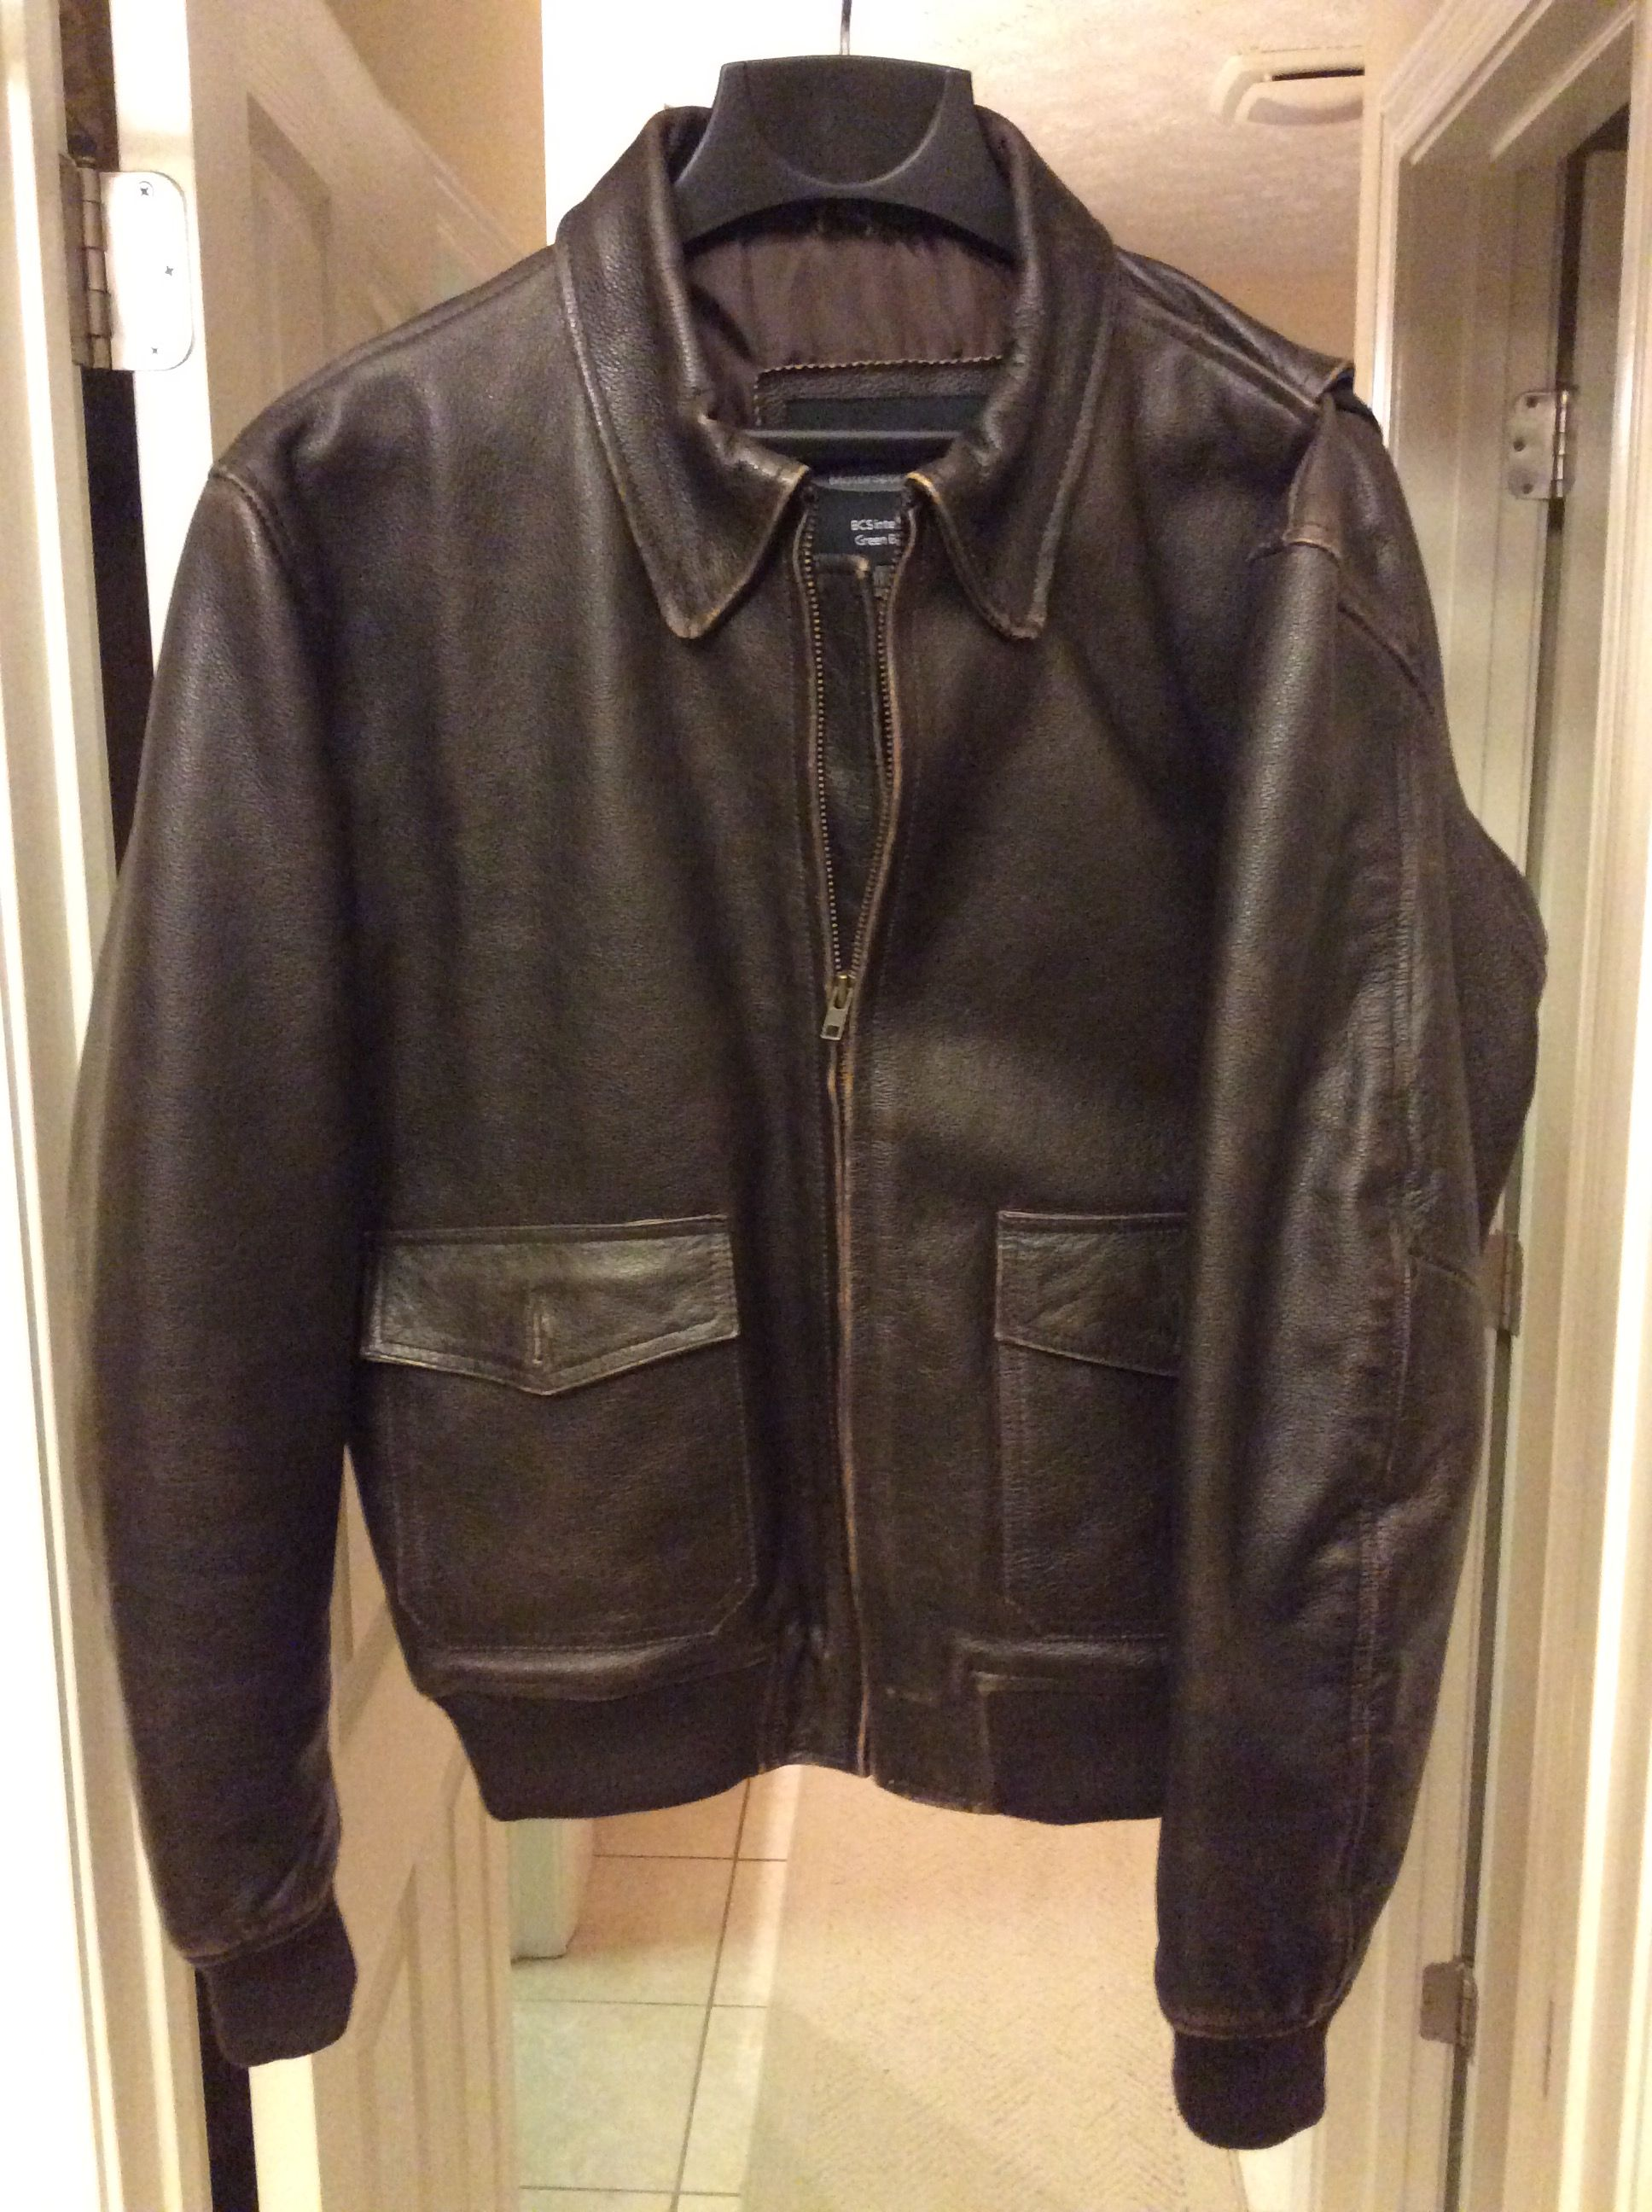 Pin by James Braun on Leather jackets Black jacket